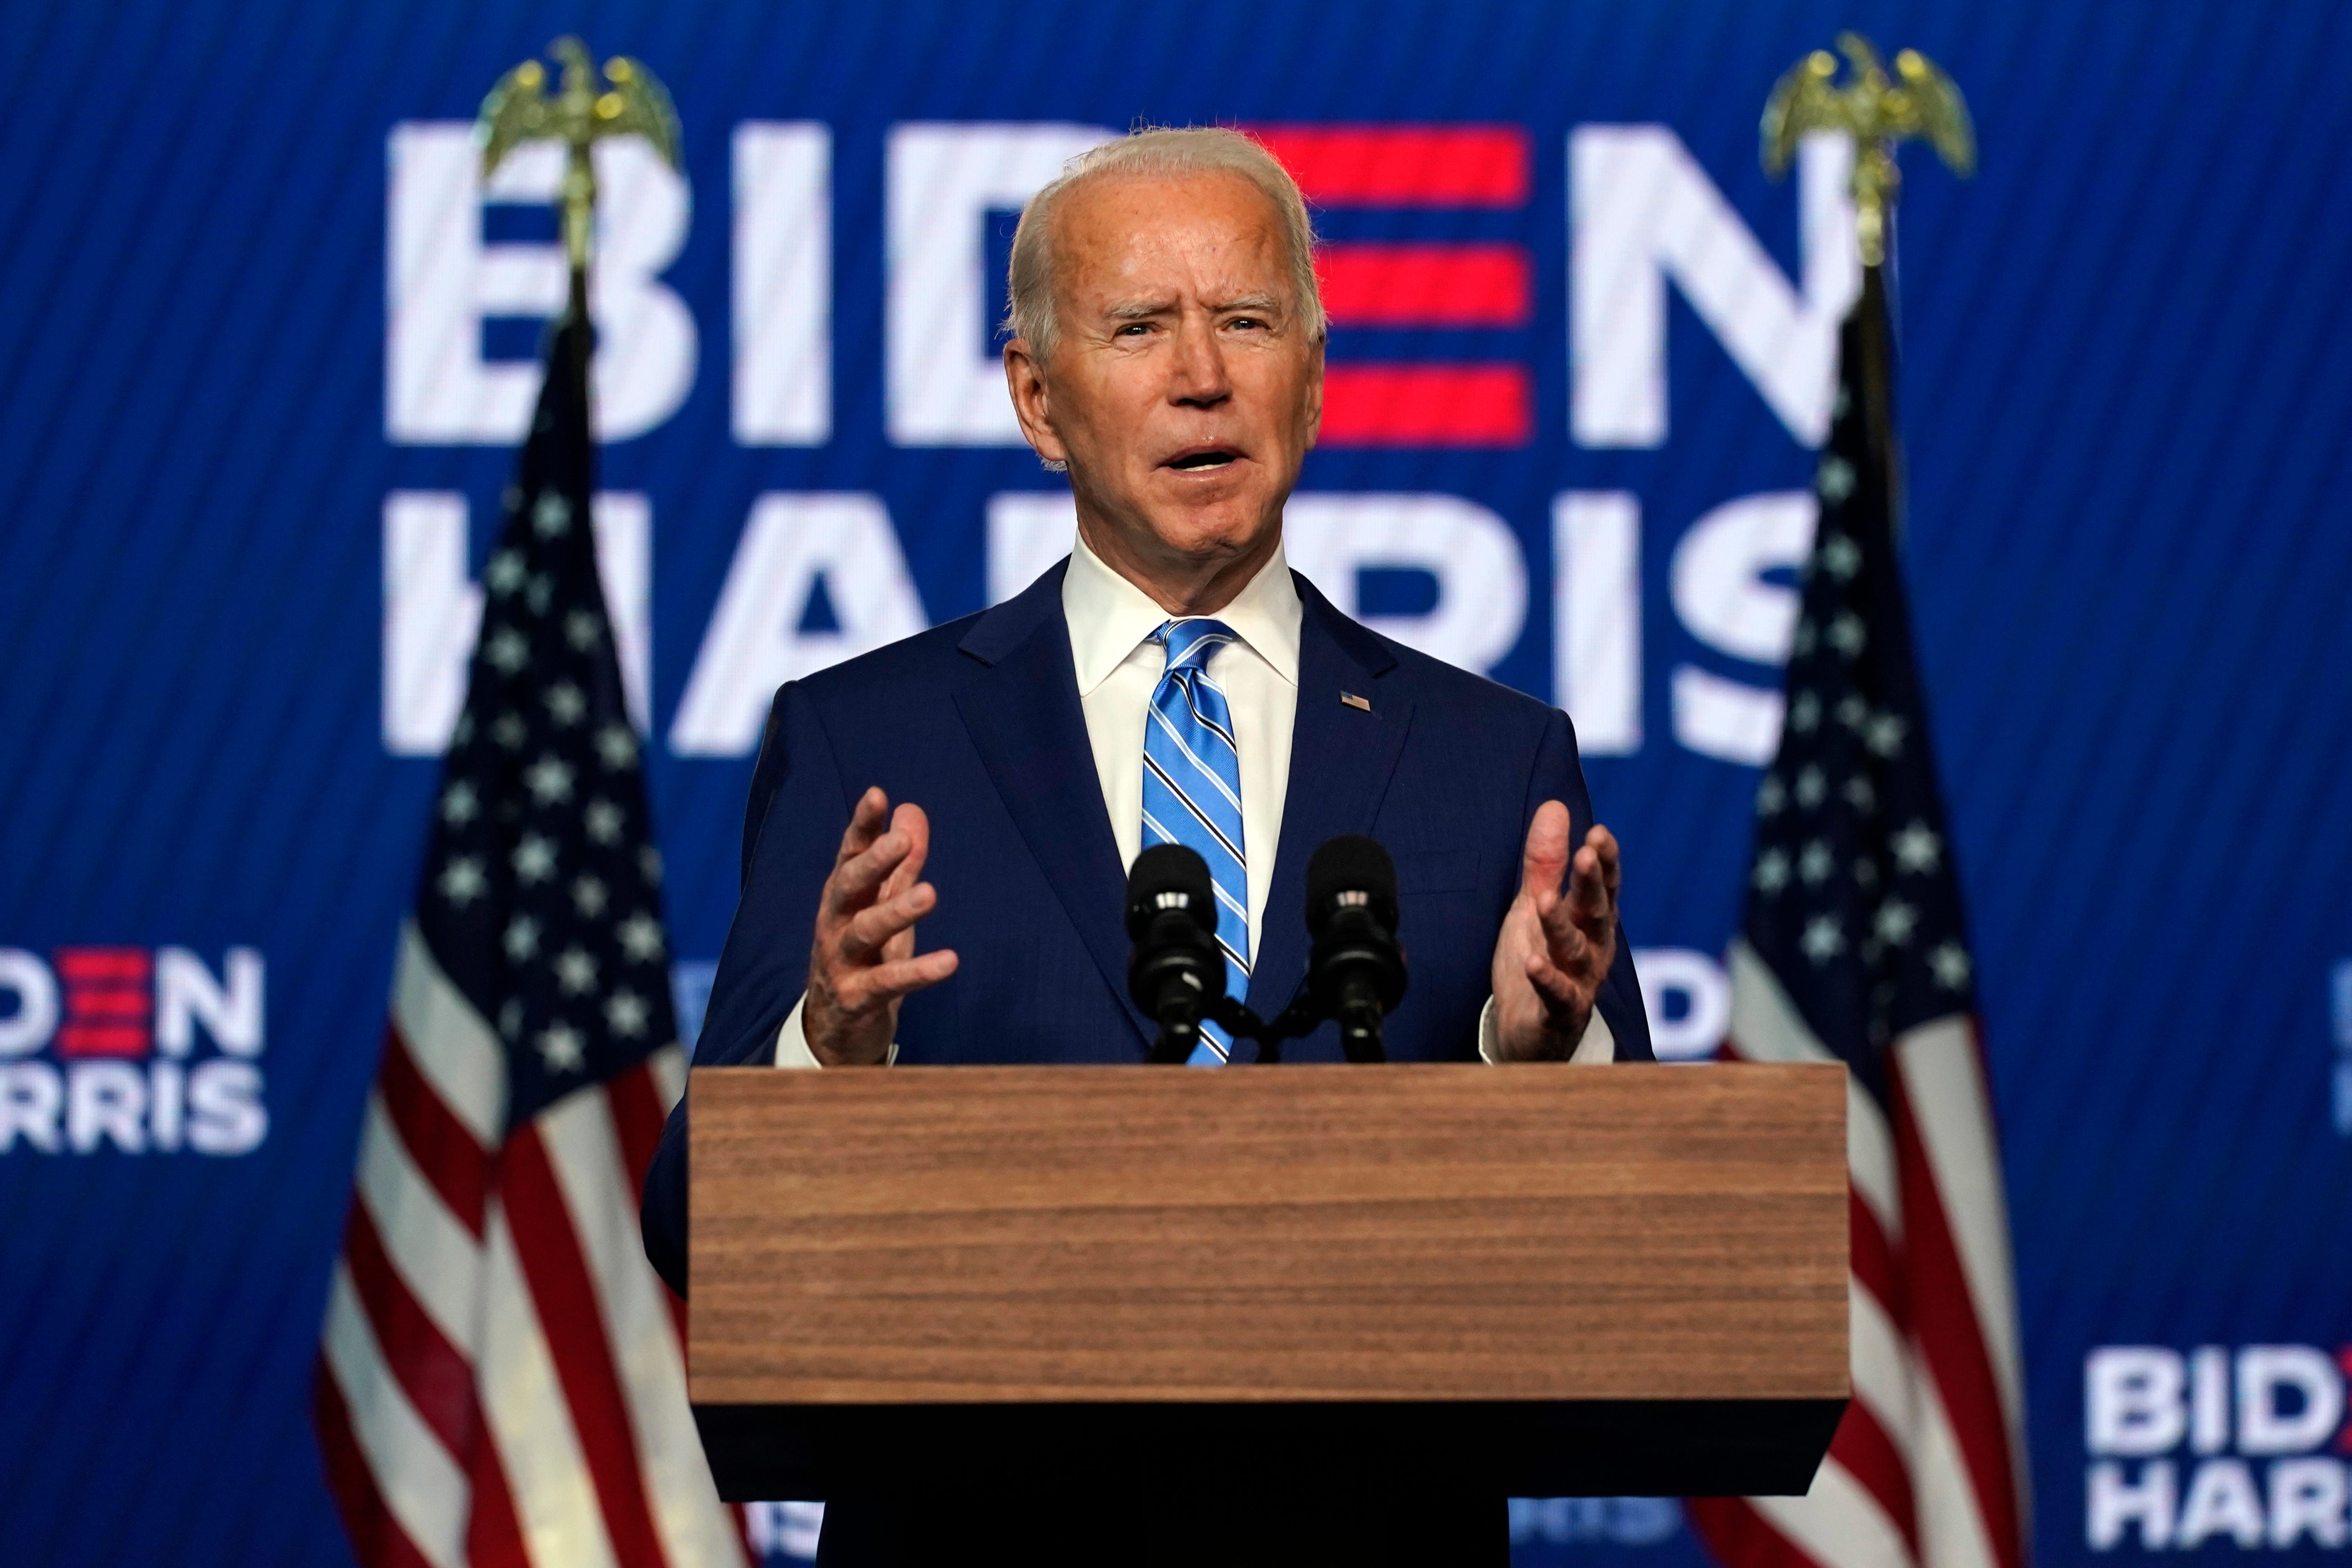 Election updates: Biden takes Michigan, putting him one swing state away from victory